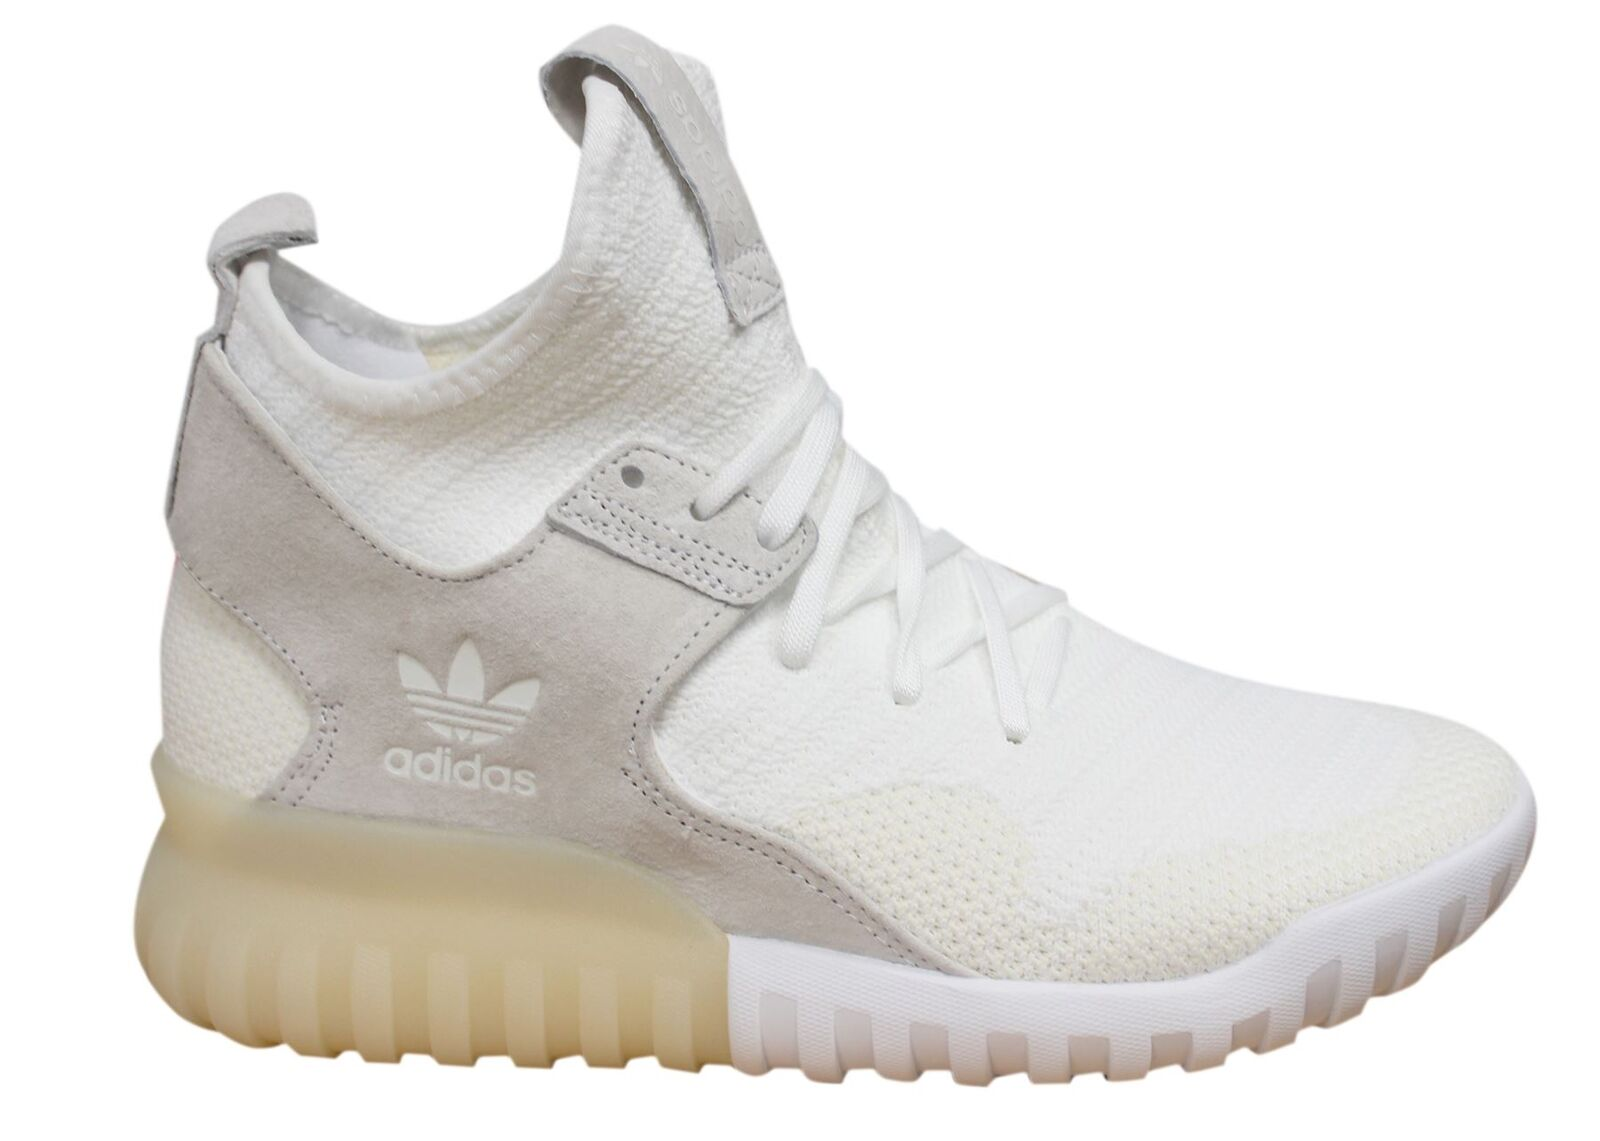 Adidas Originals Tubular X PK Lace Up White Mens Leather Trainers S80130 M16